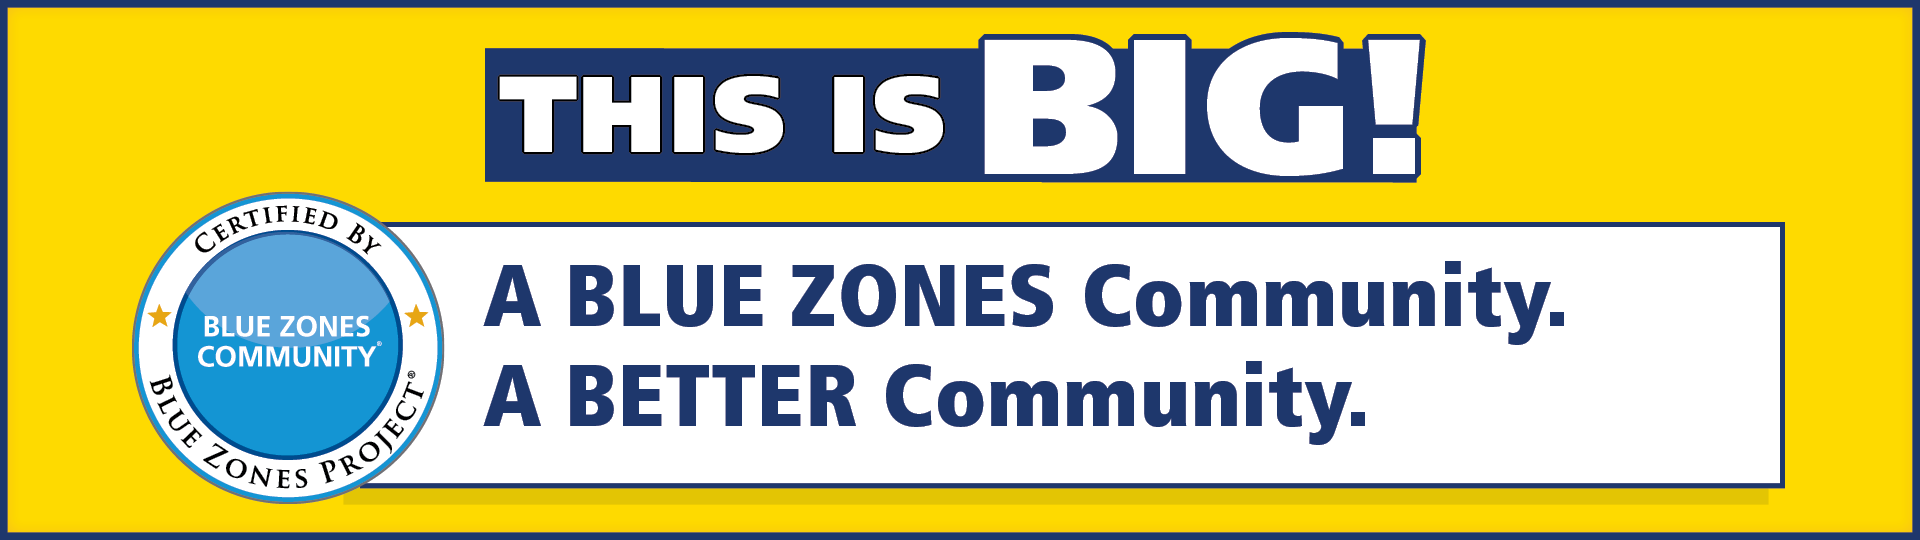 This is big! A blue zones community. A better community.